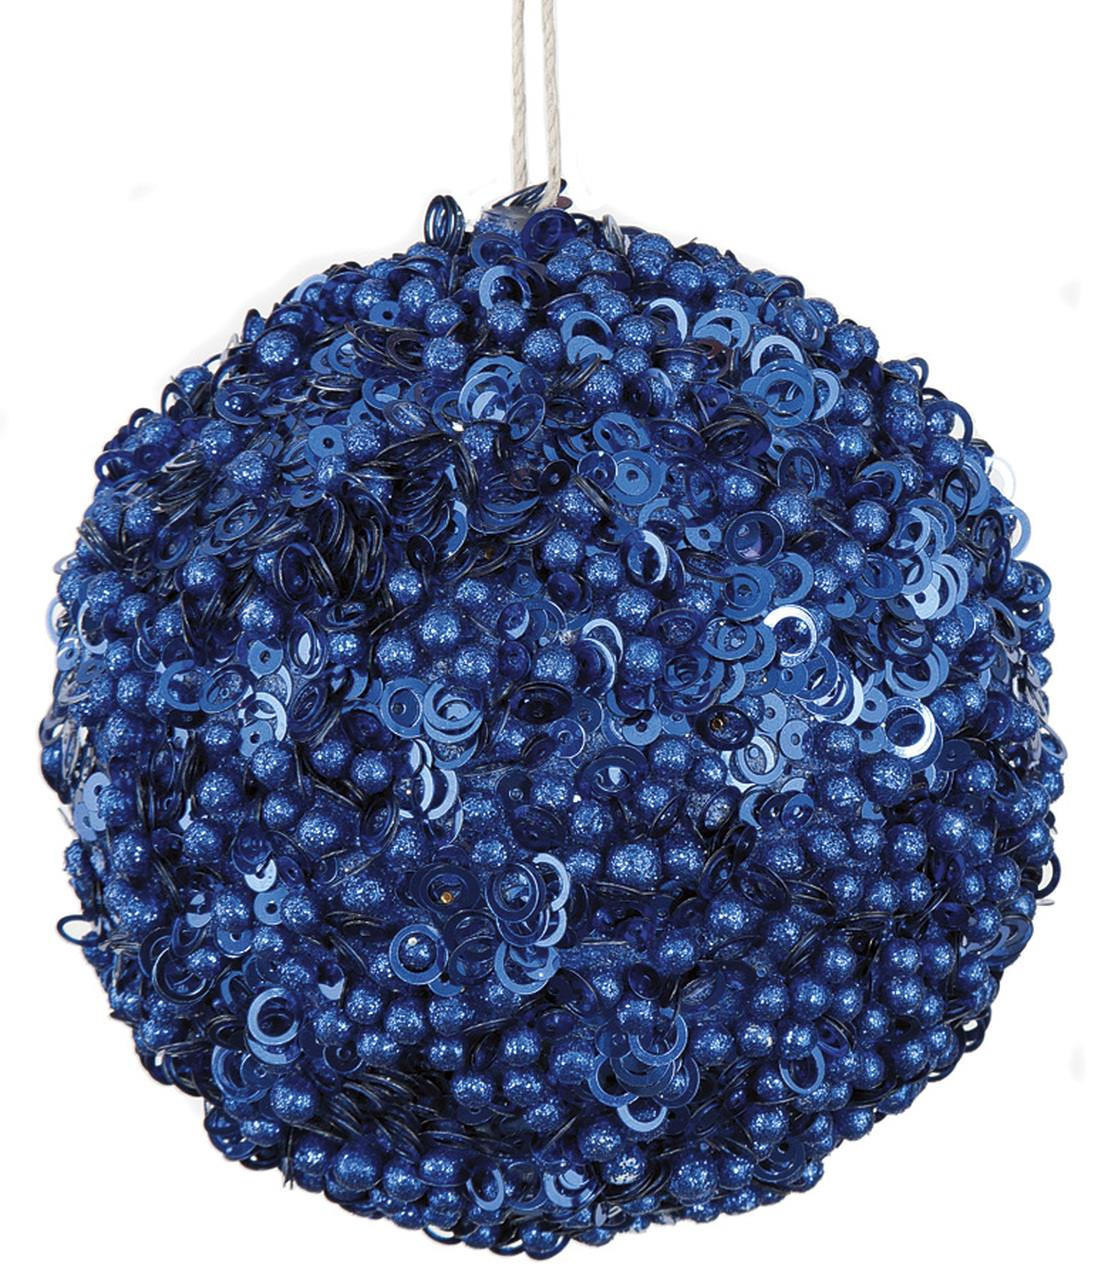 Dark Blue Glitter Ball Ornament - 4'